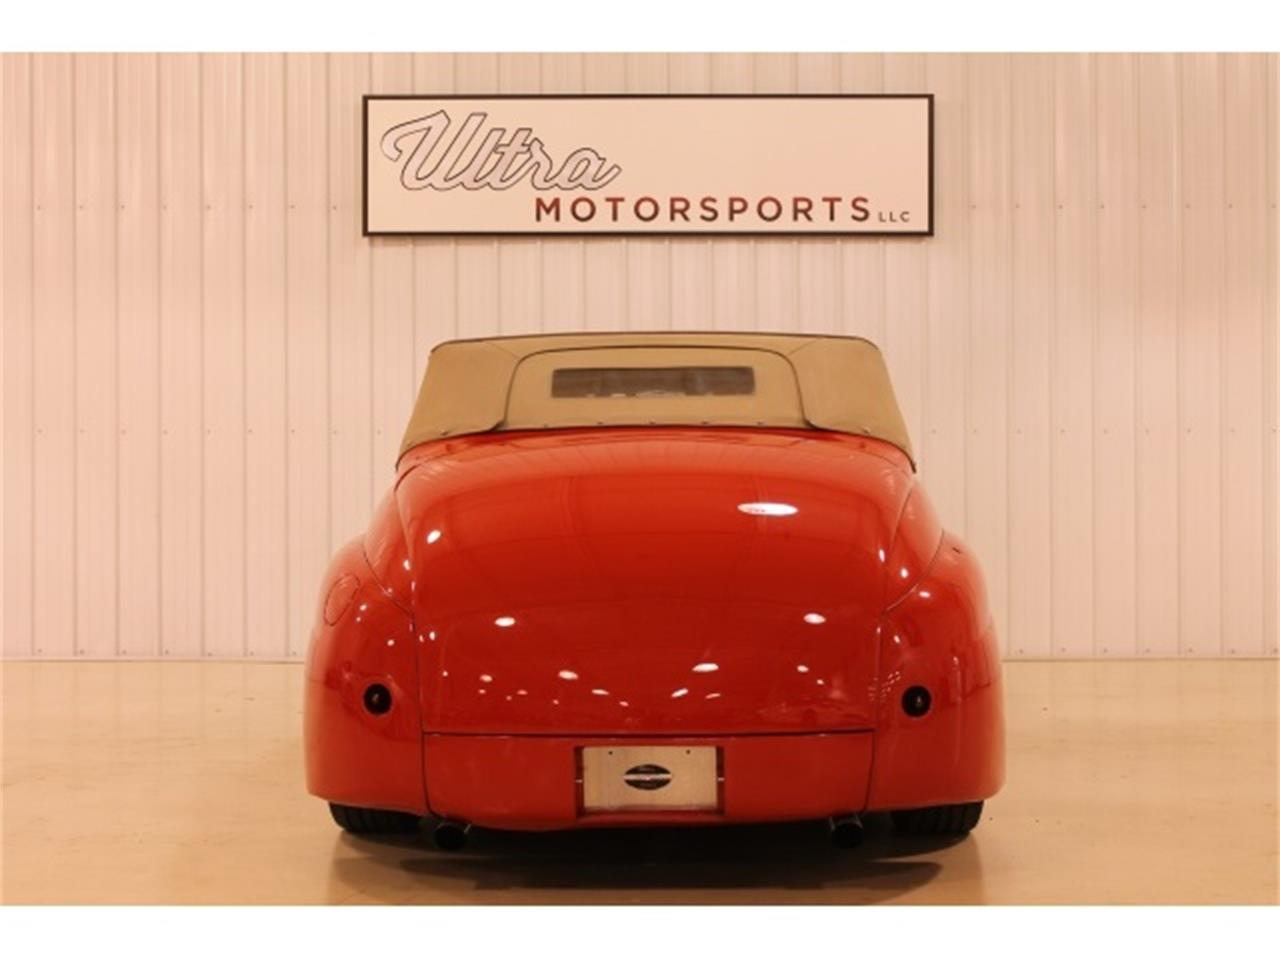 Large Picture of Classic '46 Mercury Coupe located in Fort Wayne Indiana - $28,000.00 Offered by Ultra Motorsports - MX98